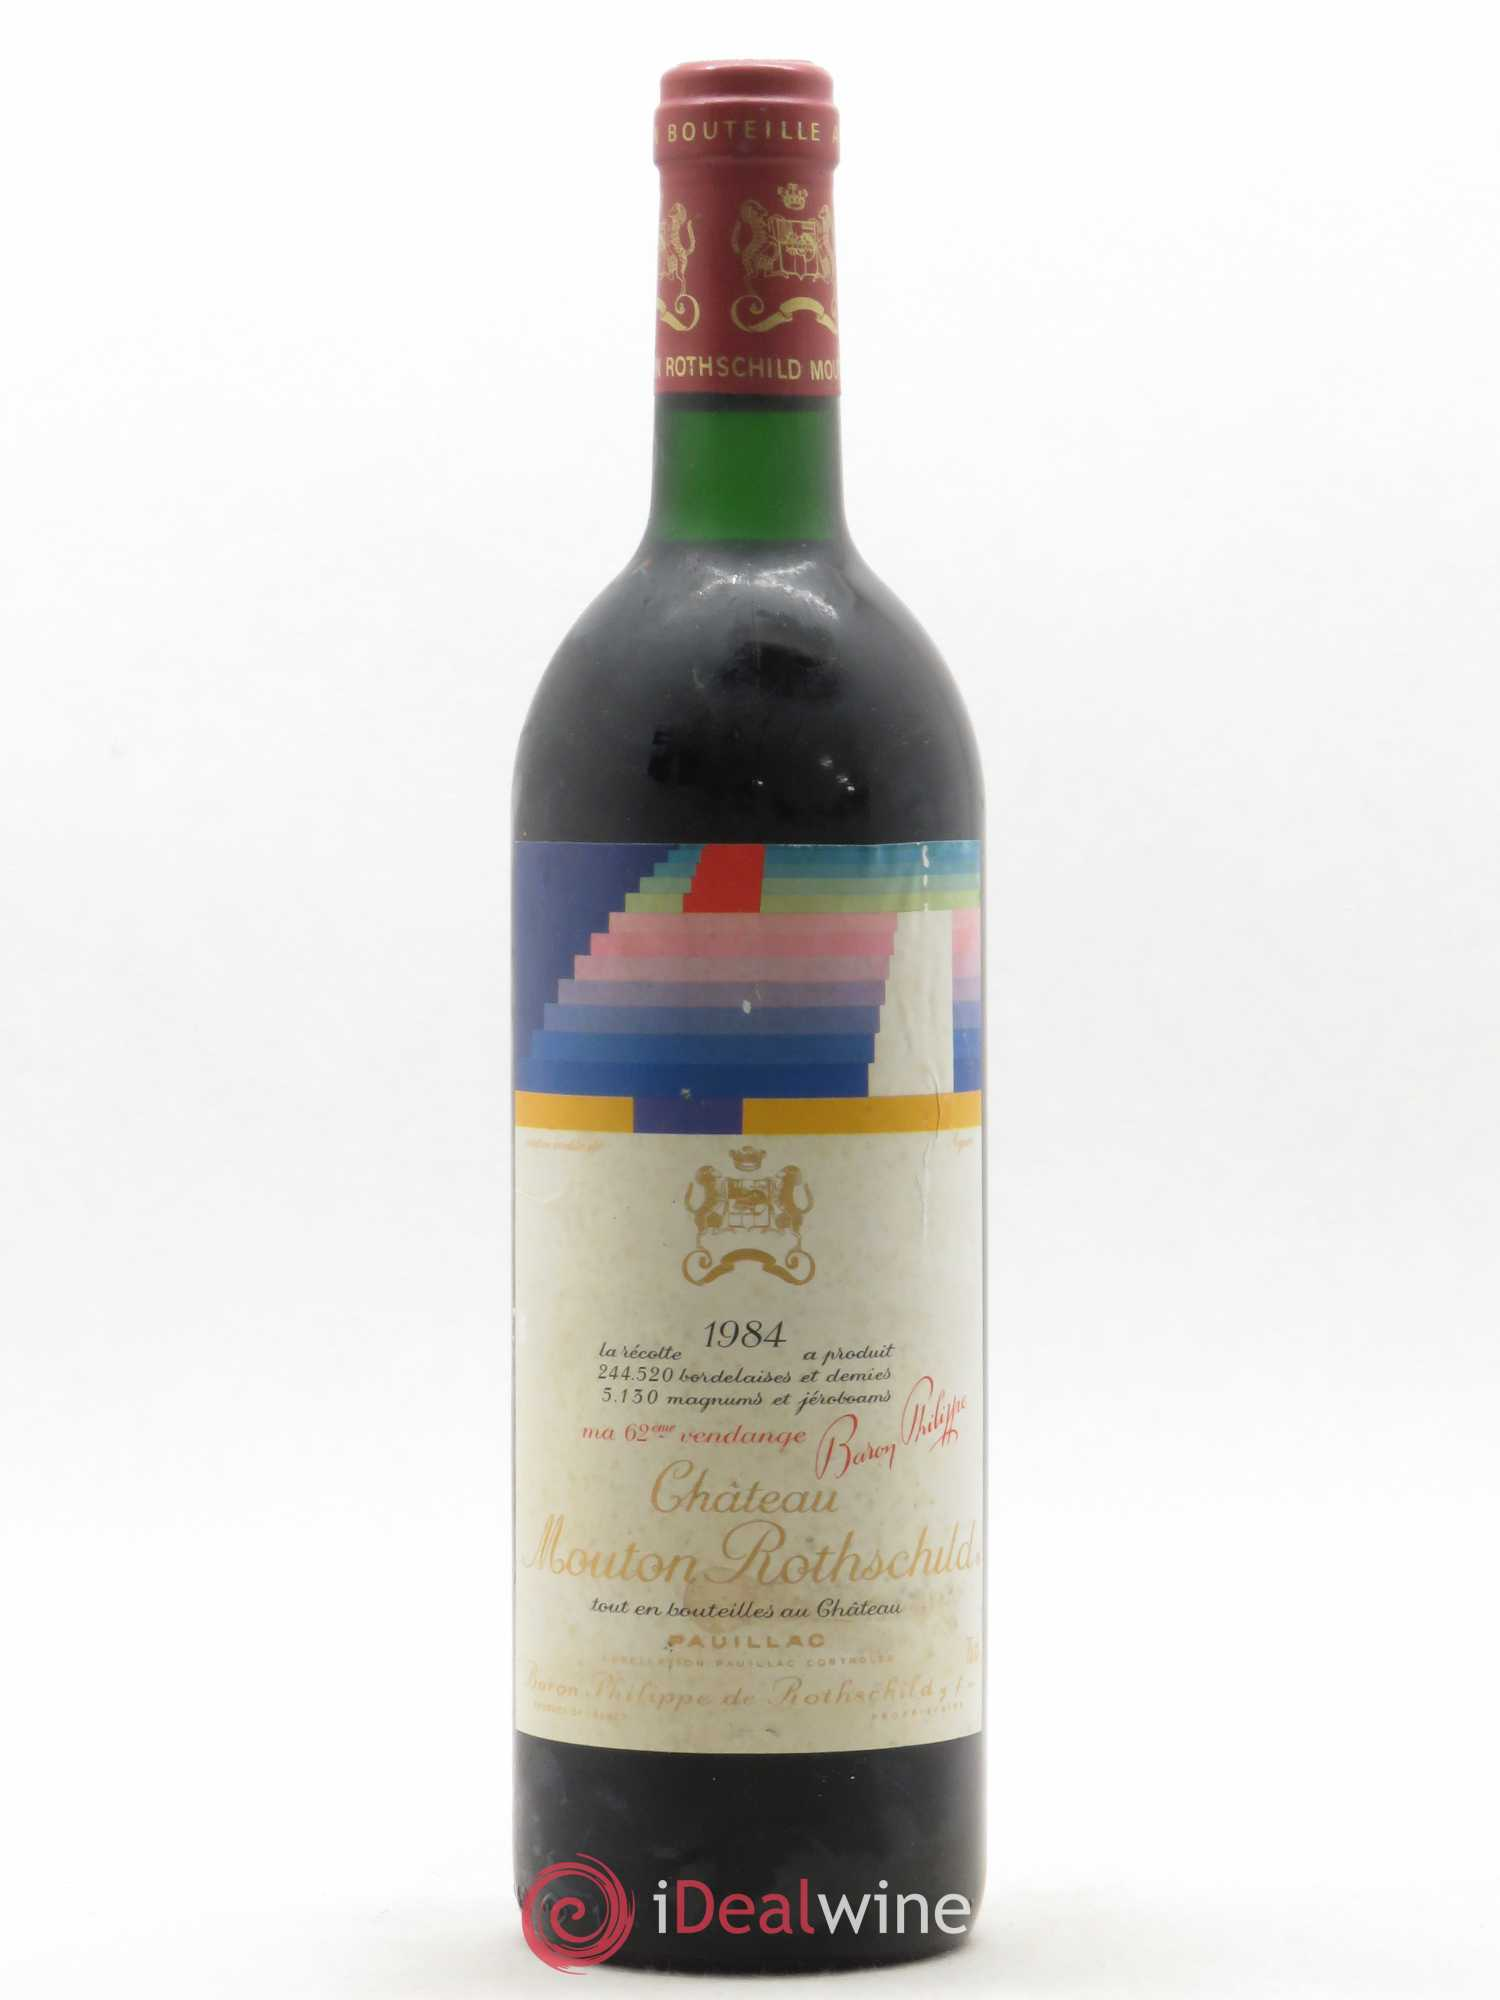 Château Mouton Rothschild 1er Grand Cru Classé (no reserve) 1984 - Lot of 1 Bottle